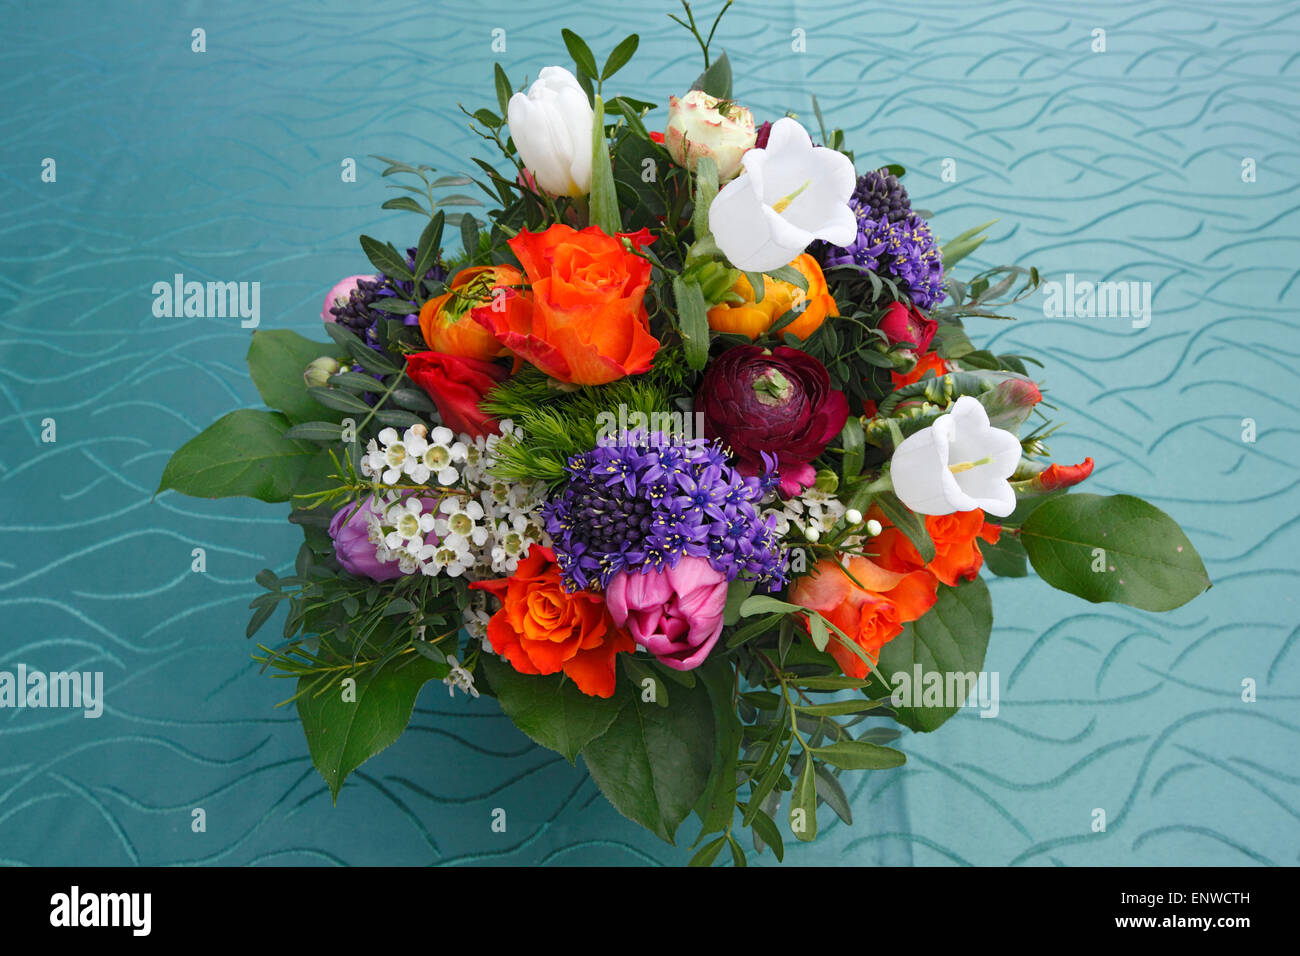 nature, plants, flowers, bunch of flowers, birthday bouquet, red roses, tulips, buttercups, ranunculus, Canterbury - Stock Image